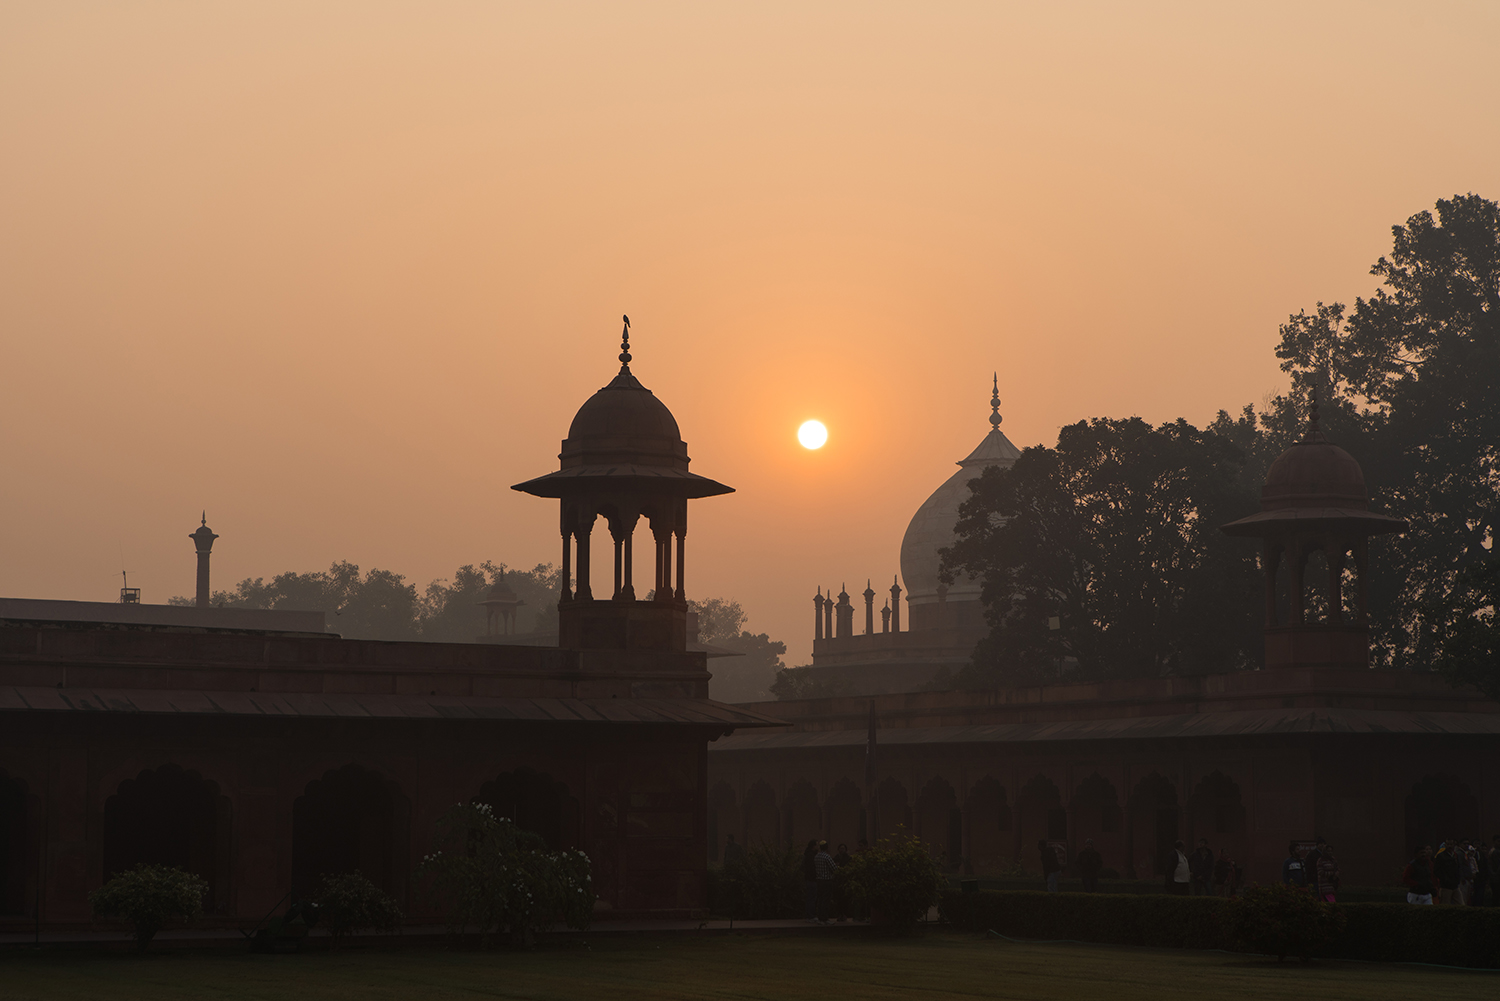 The sun rising over the Taj Mahal